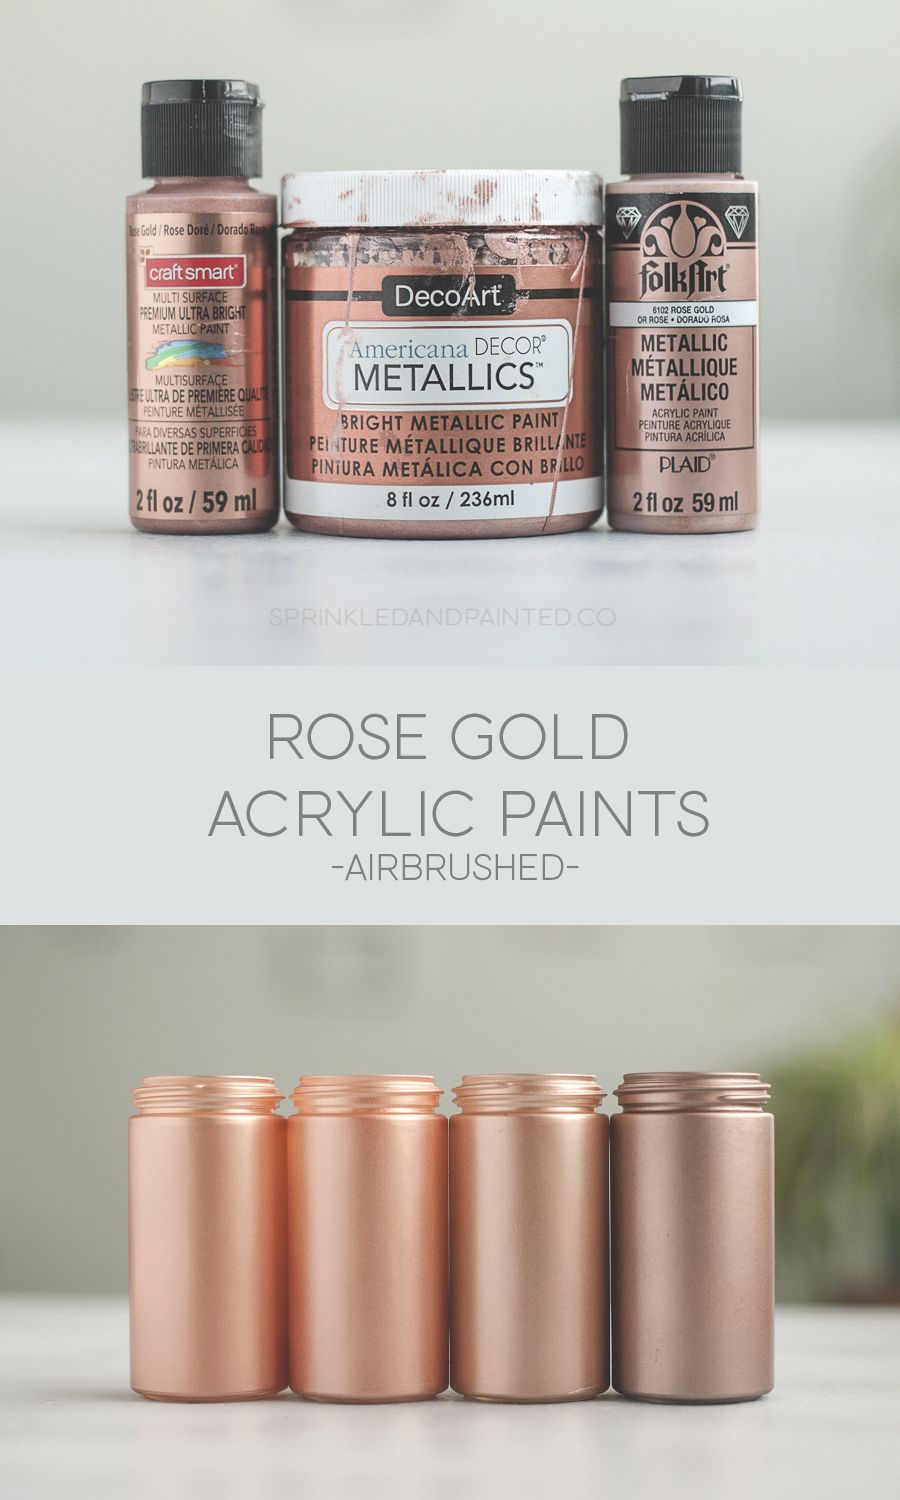 Rose Gold Acrylic Paint For Airbrushing Sprinkled And Painted At Ka Styles Co Rose Gold Painting Gold Painted Furniture Gold Acrylic Paint